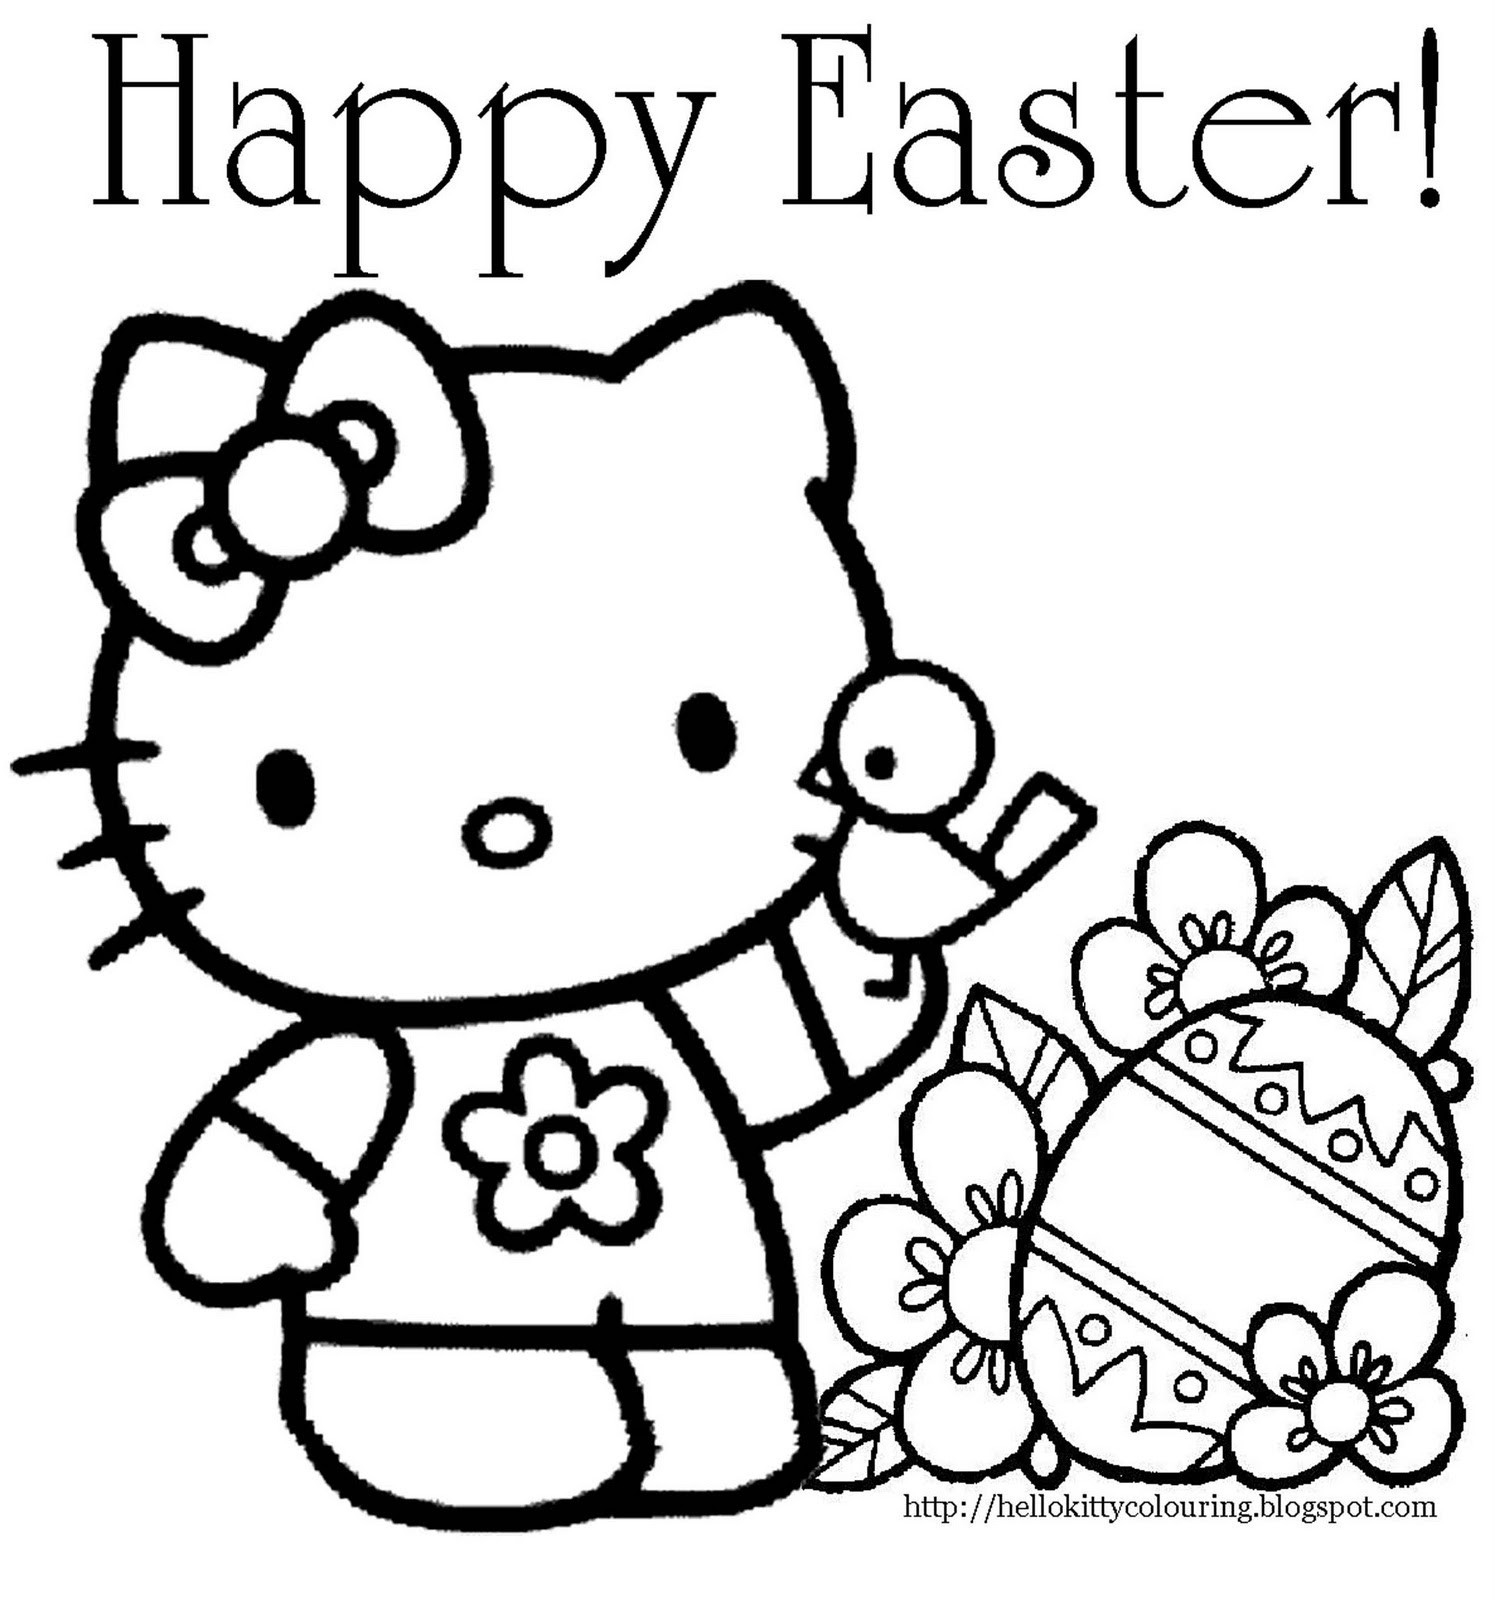 Easter Coloring Pages Free Printable - Lezincnyc - Free Printable Easter Drawings